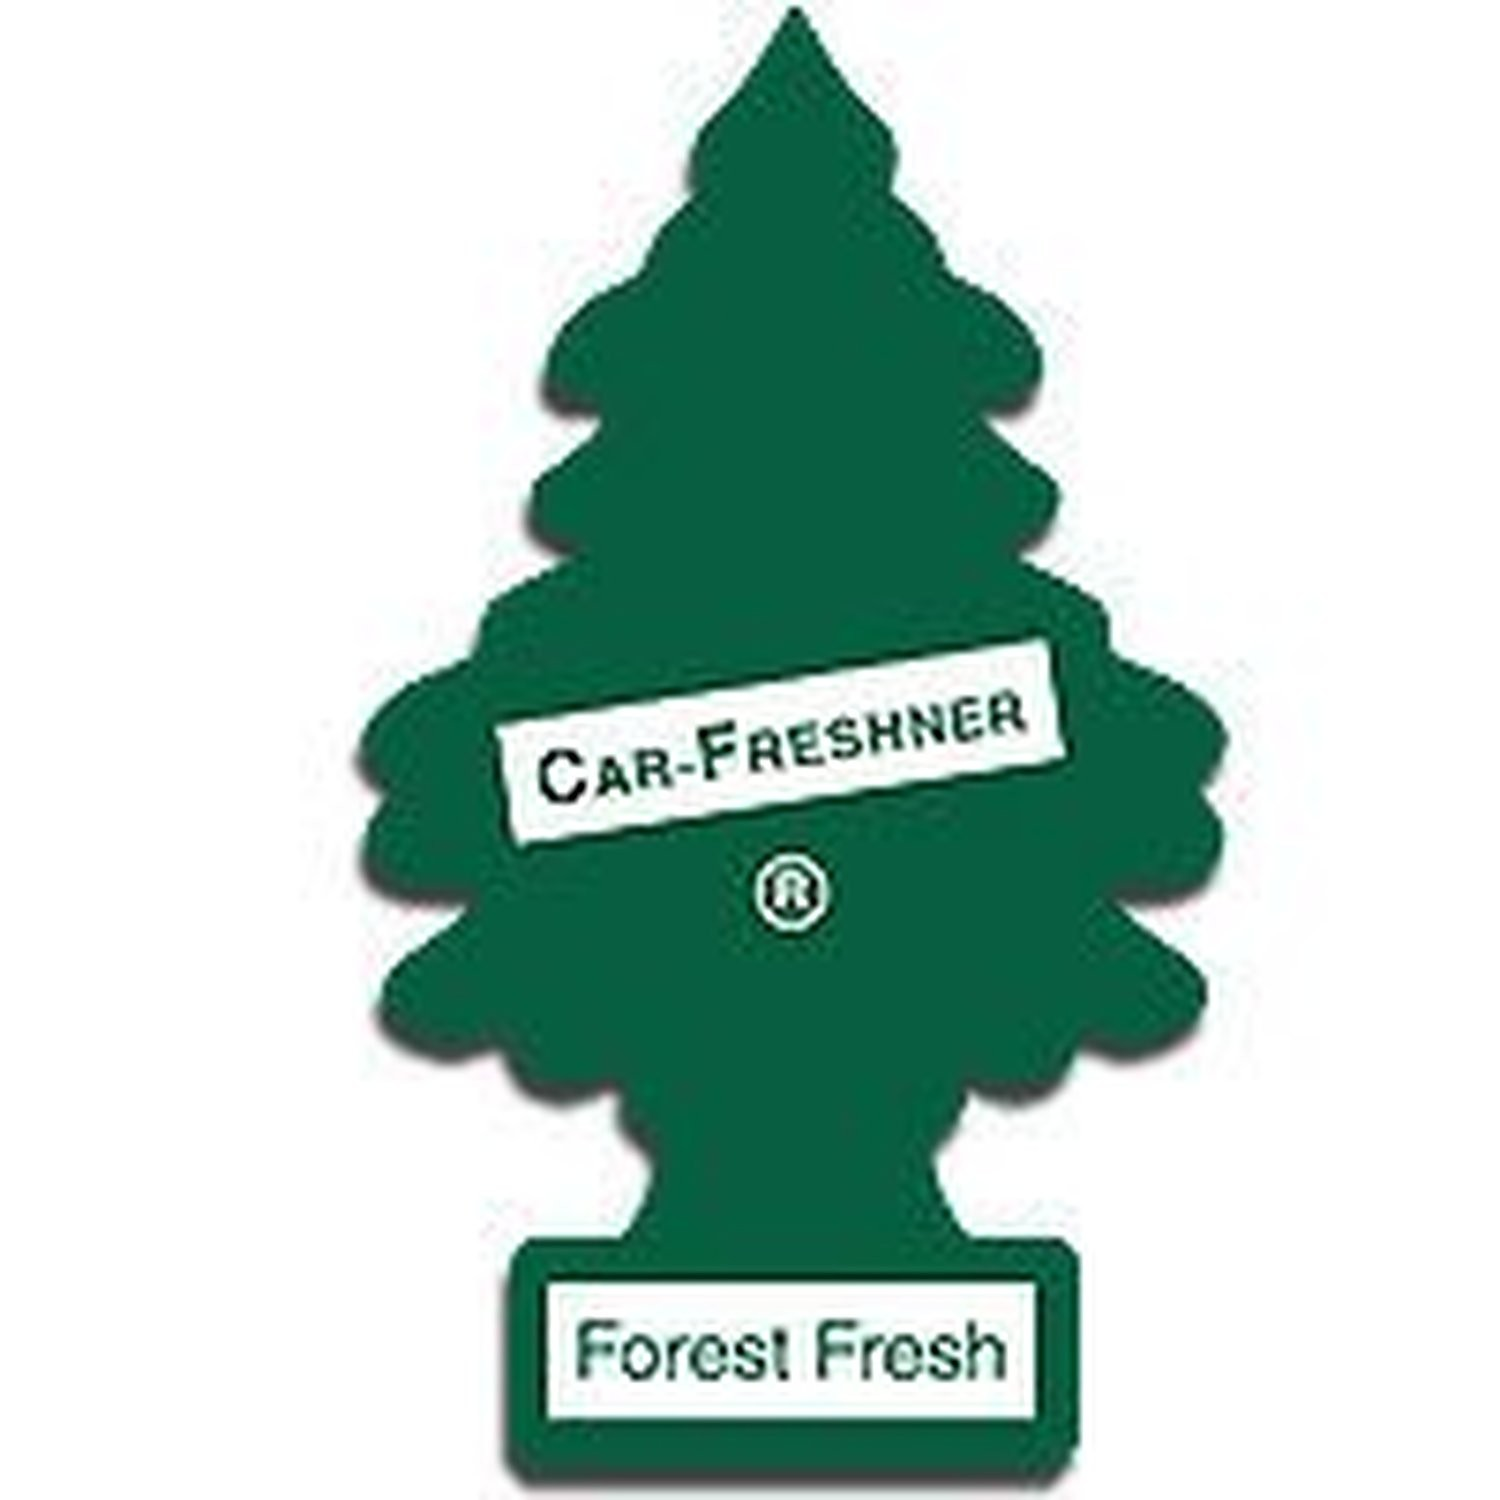 AoE Performance Magic Tree Car Air Freshener Duo Gift Pack Forest Fresh And Black Ice